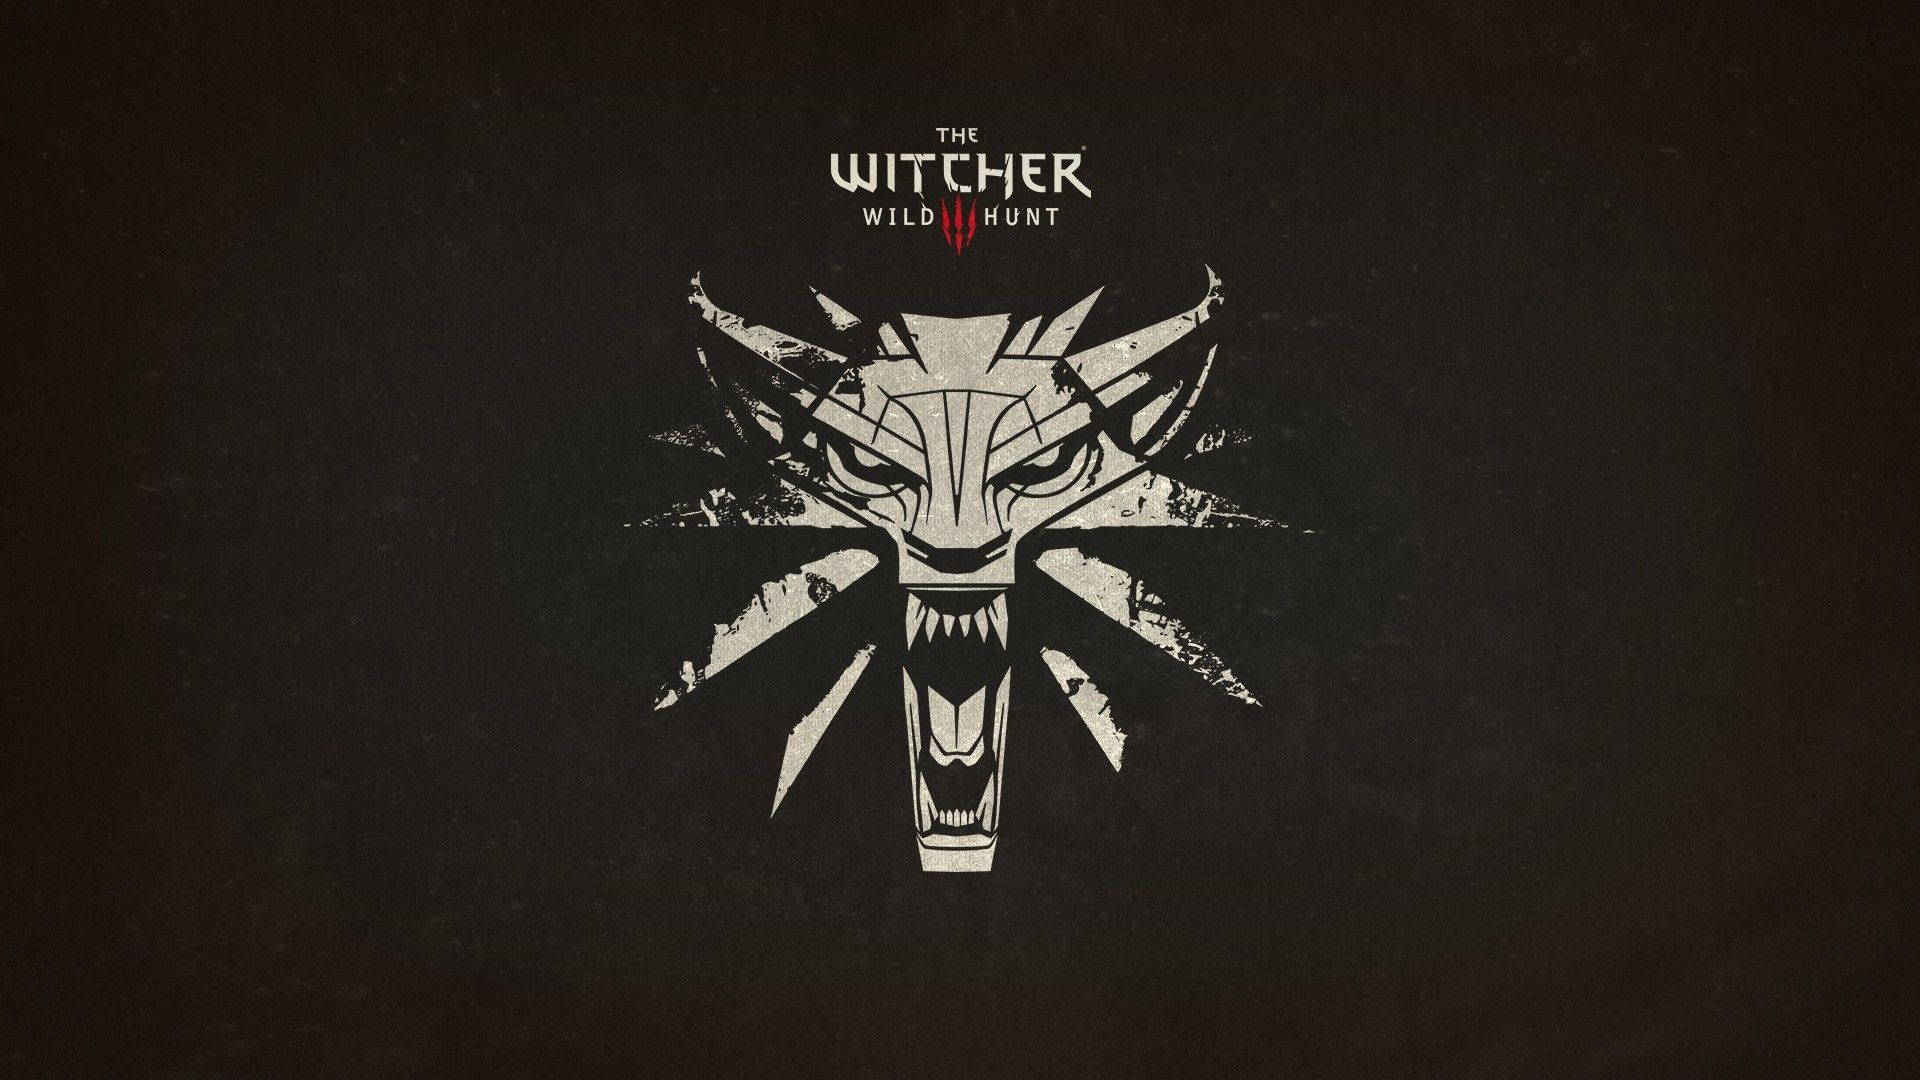 Witcher 3 Logo Wallpapers Top Free Witcher 3 Logo Backgrounds